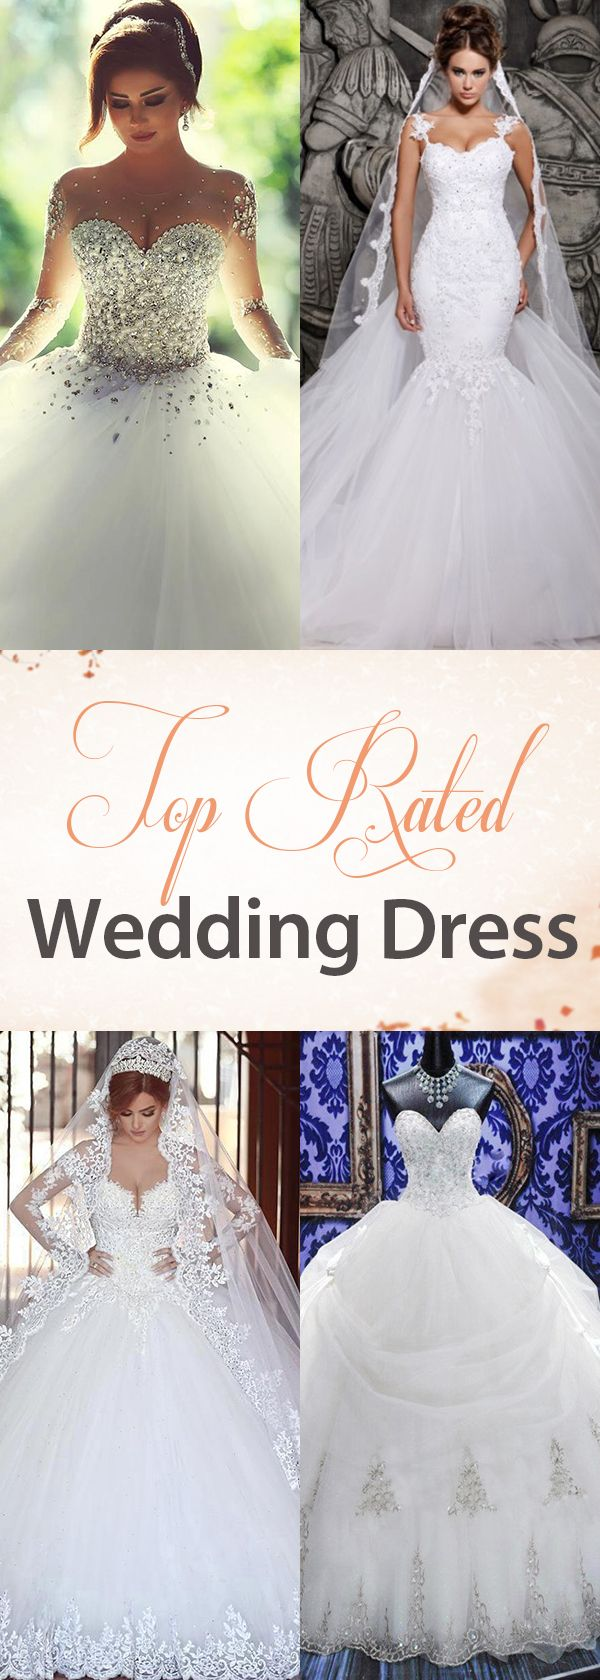 Top Rated Wedding Dresses In 2016 These Are Bride S Favorite Dress Style